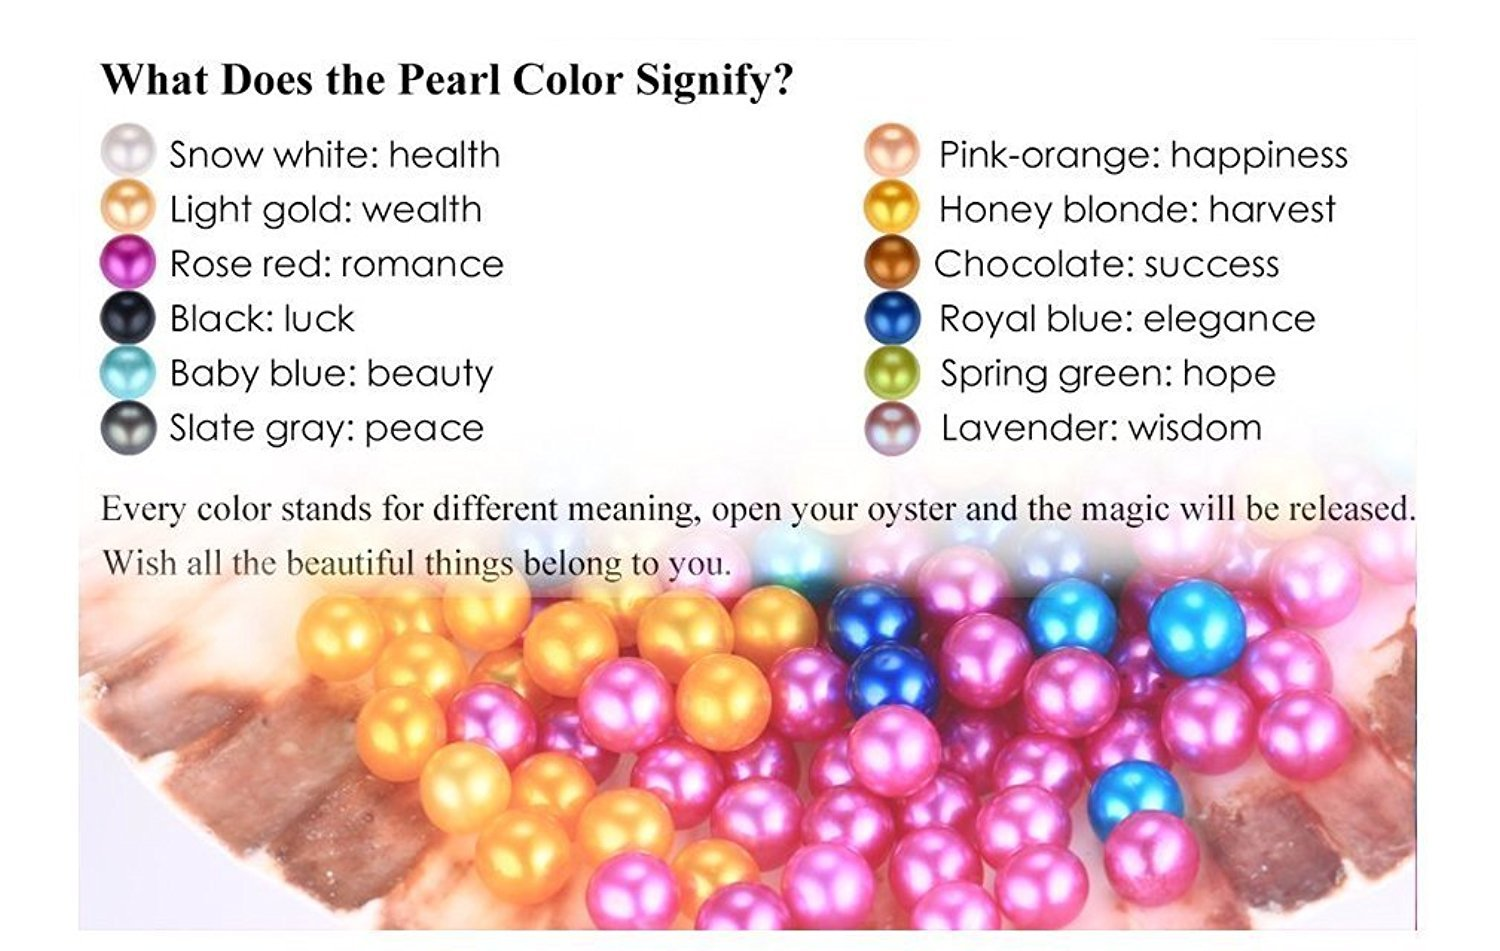 50PC Saltwater Akoya Pearls Oysters with 7-8mm Love Wish Pearl Inside Mixed Colors, Jewelry Making or Birthday Gifts by COOCLE (Image #2)